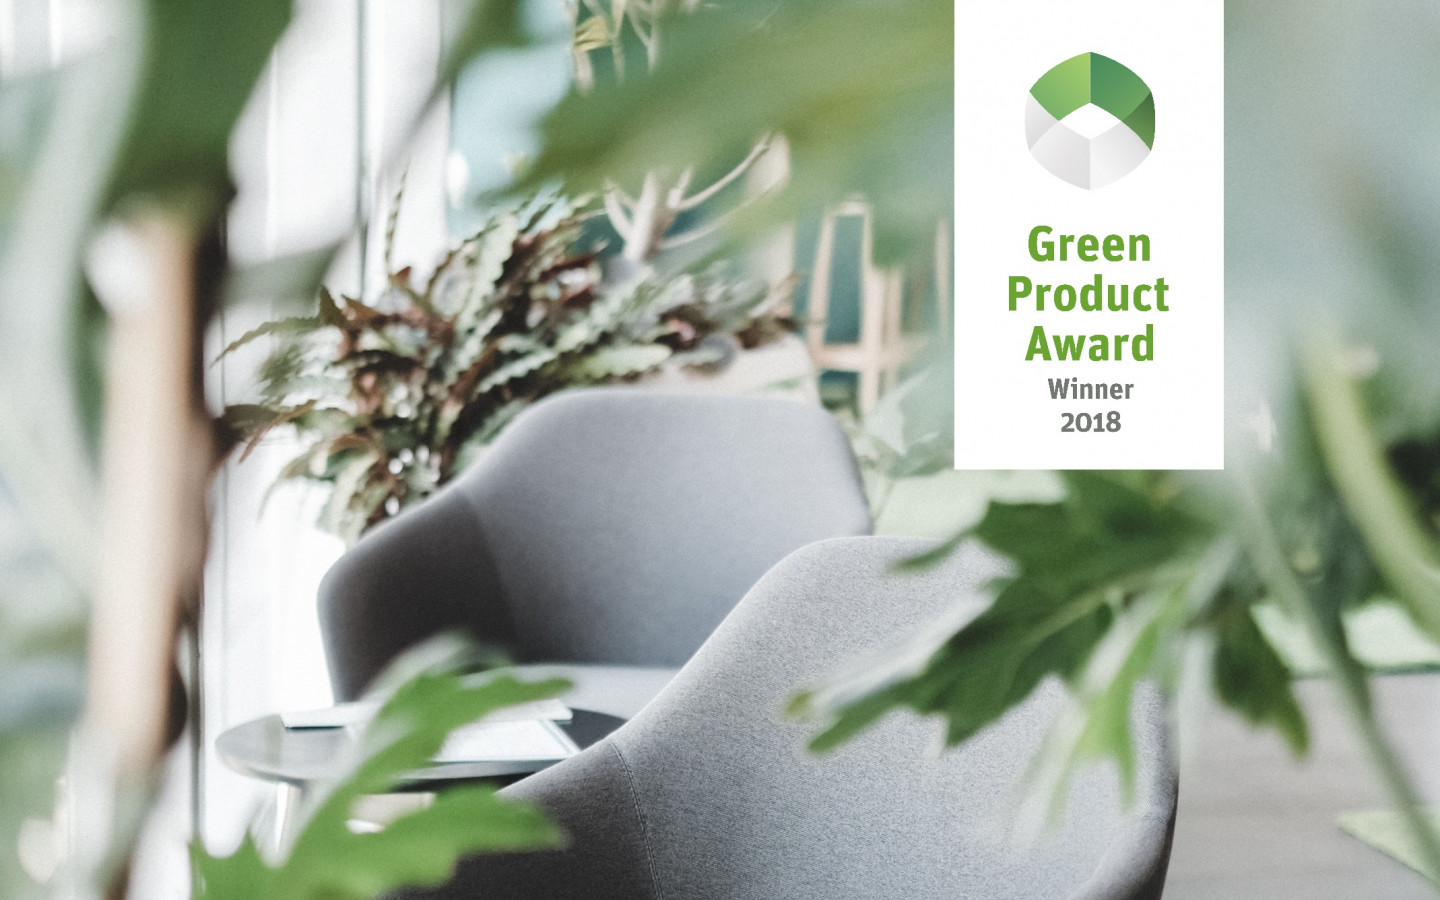 Green Product Award Winners 2018